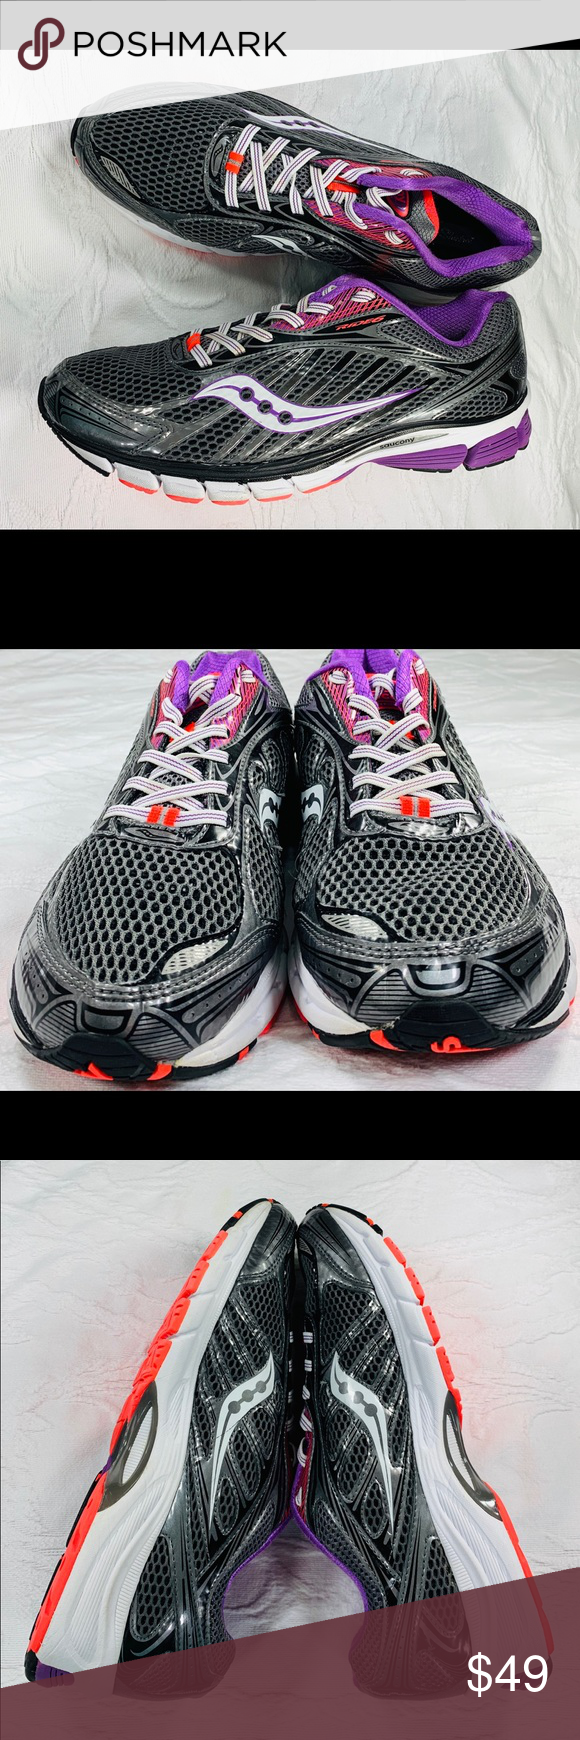 saucony ride 6 purpura